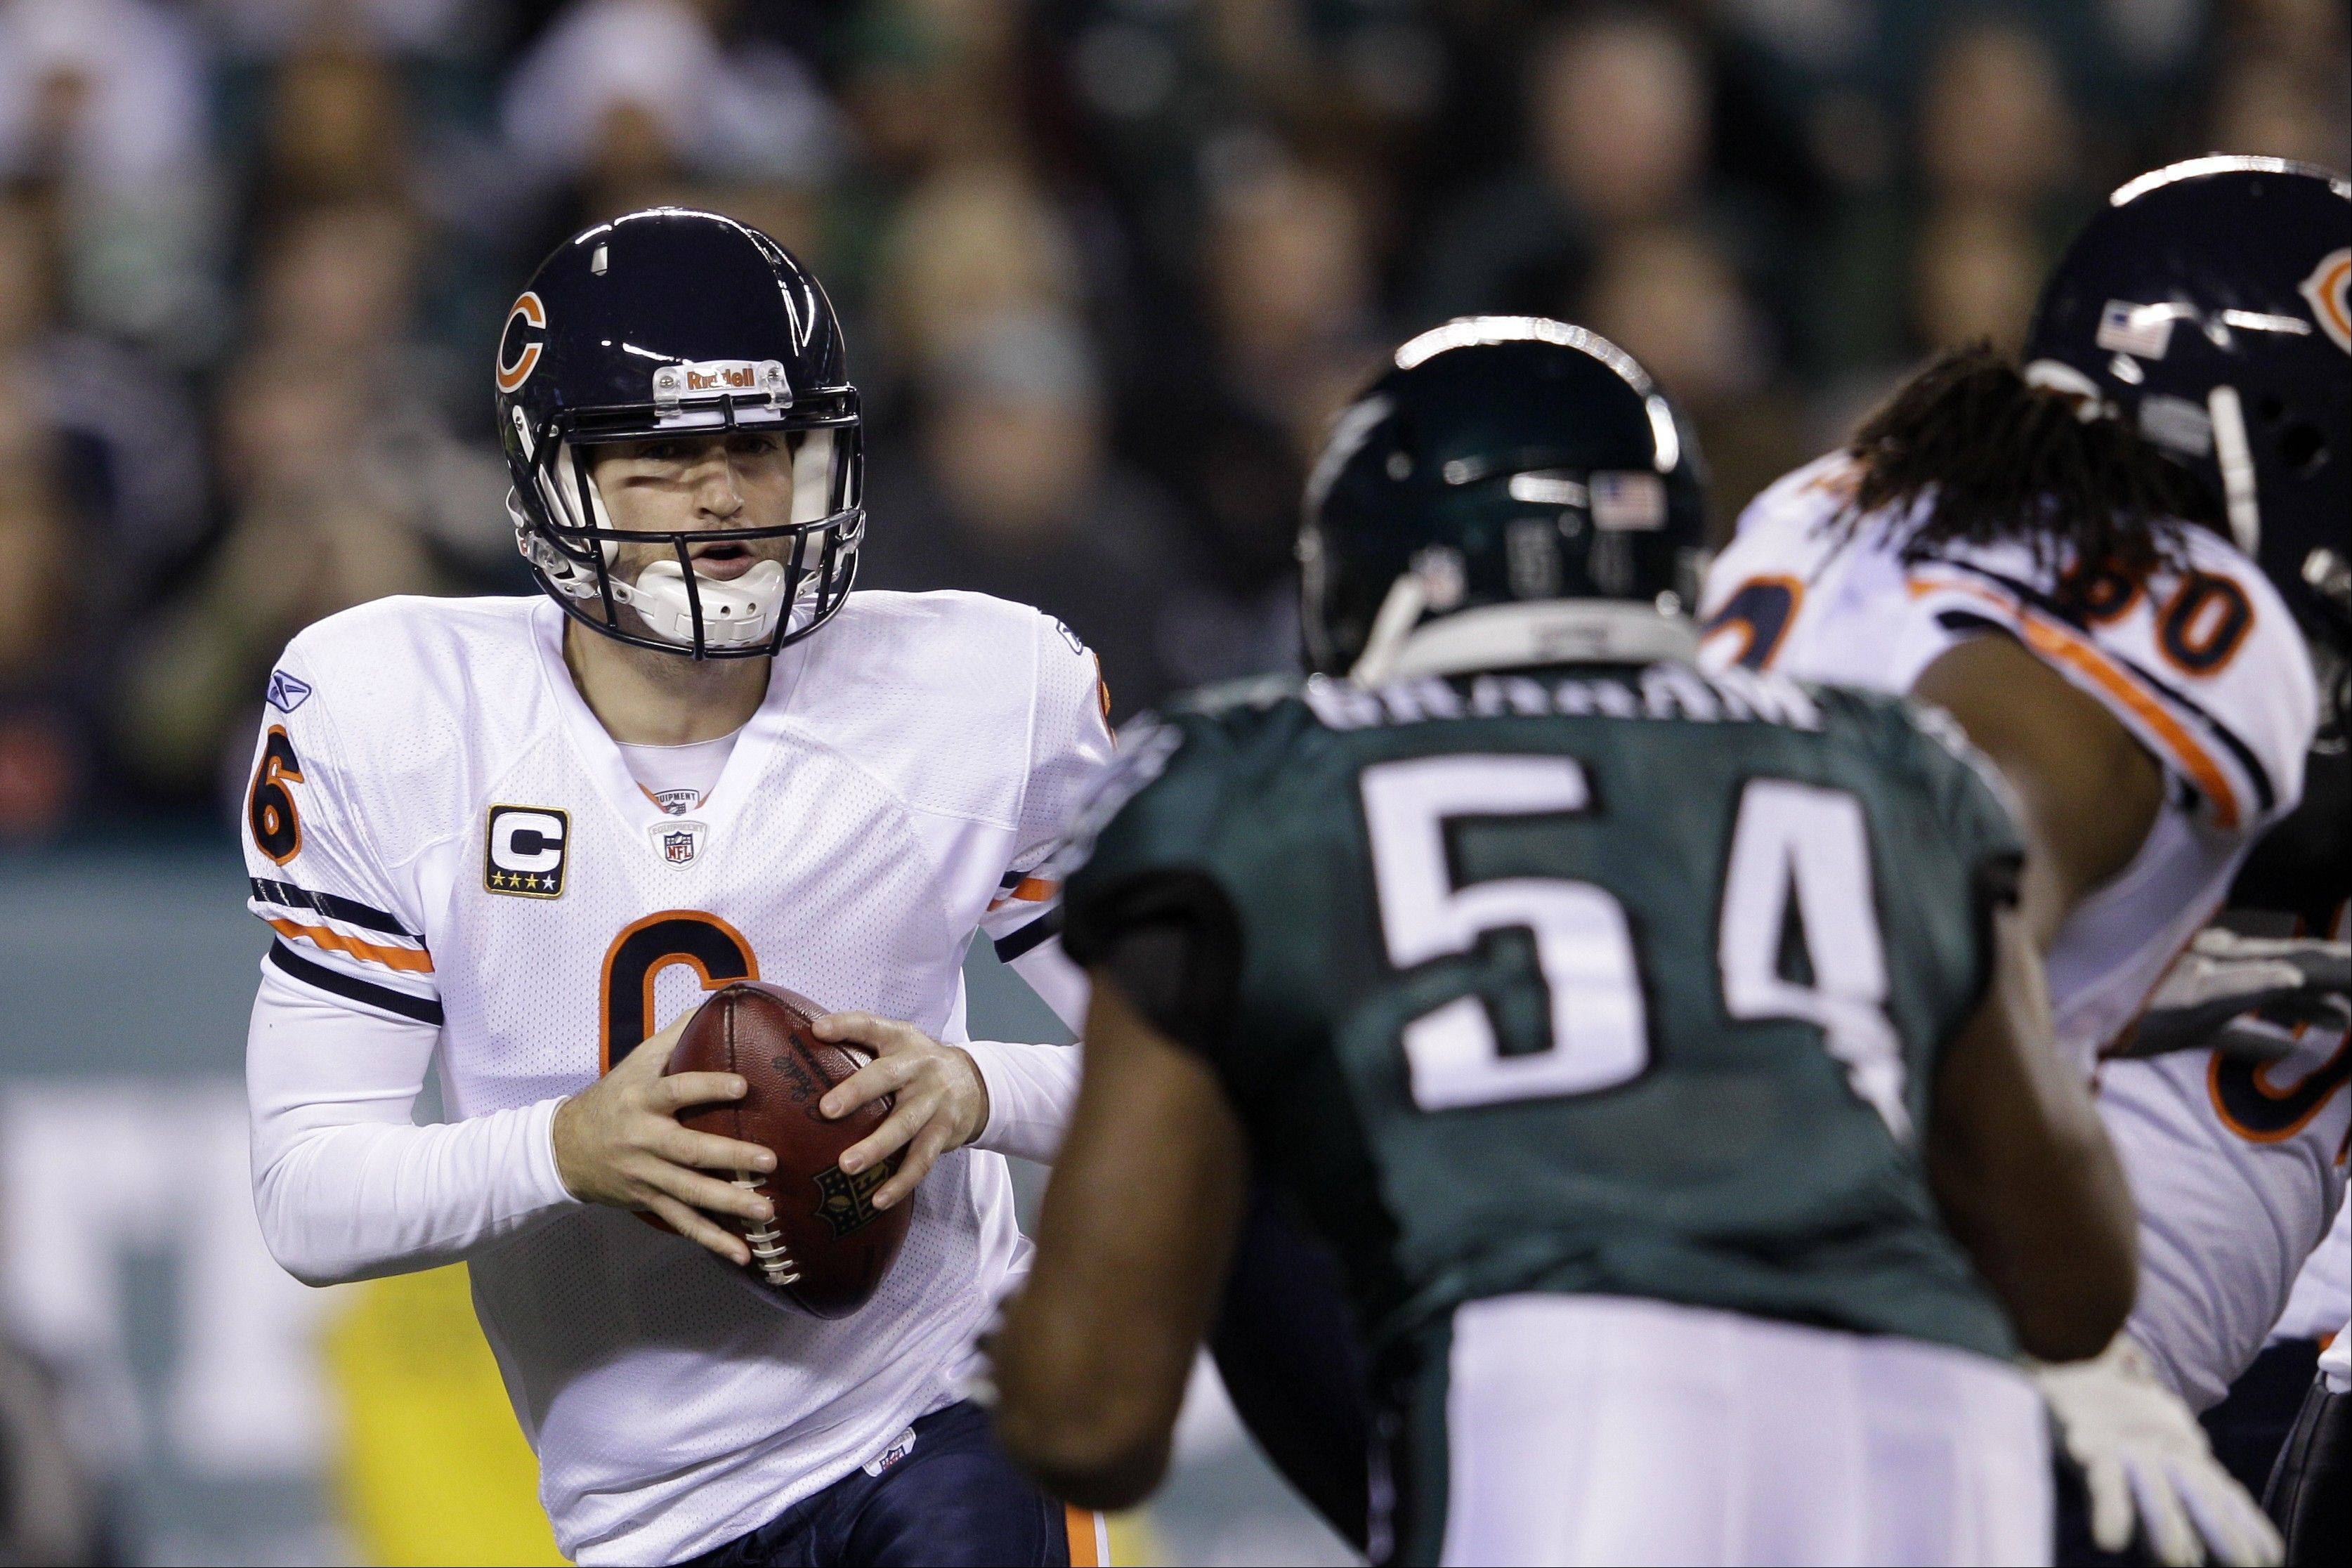 This week Bears quarterback Jay Cutler has scored a lot of points on and off the field, says Mike Spellman.